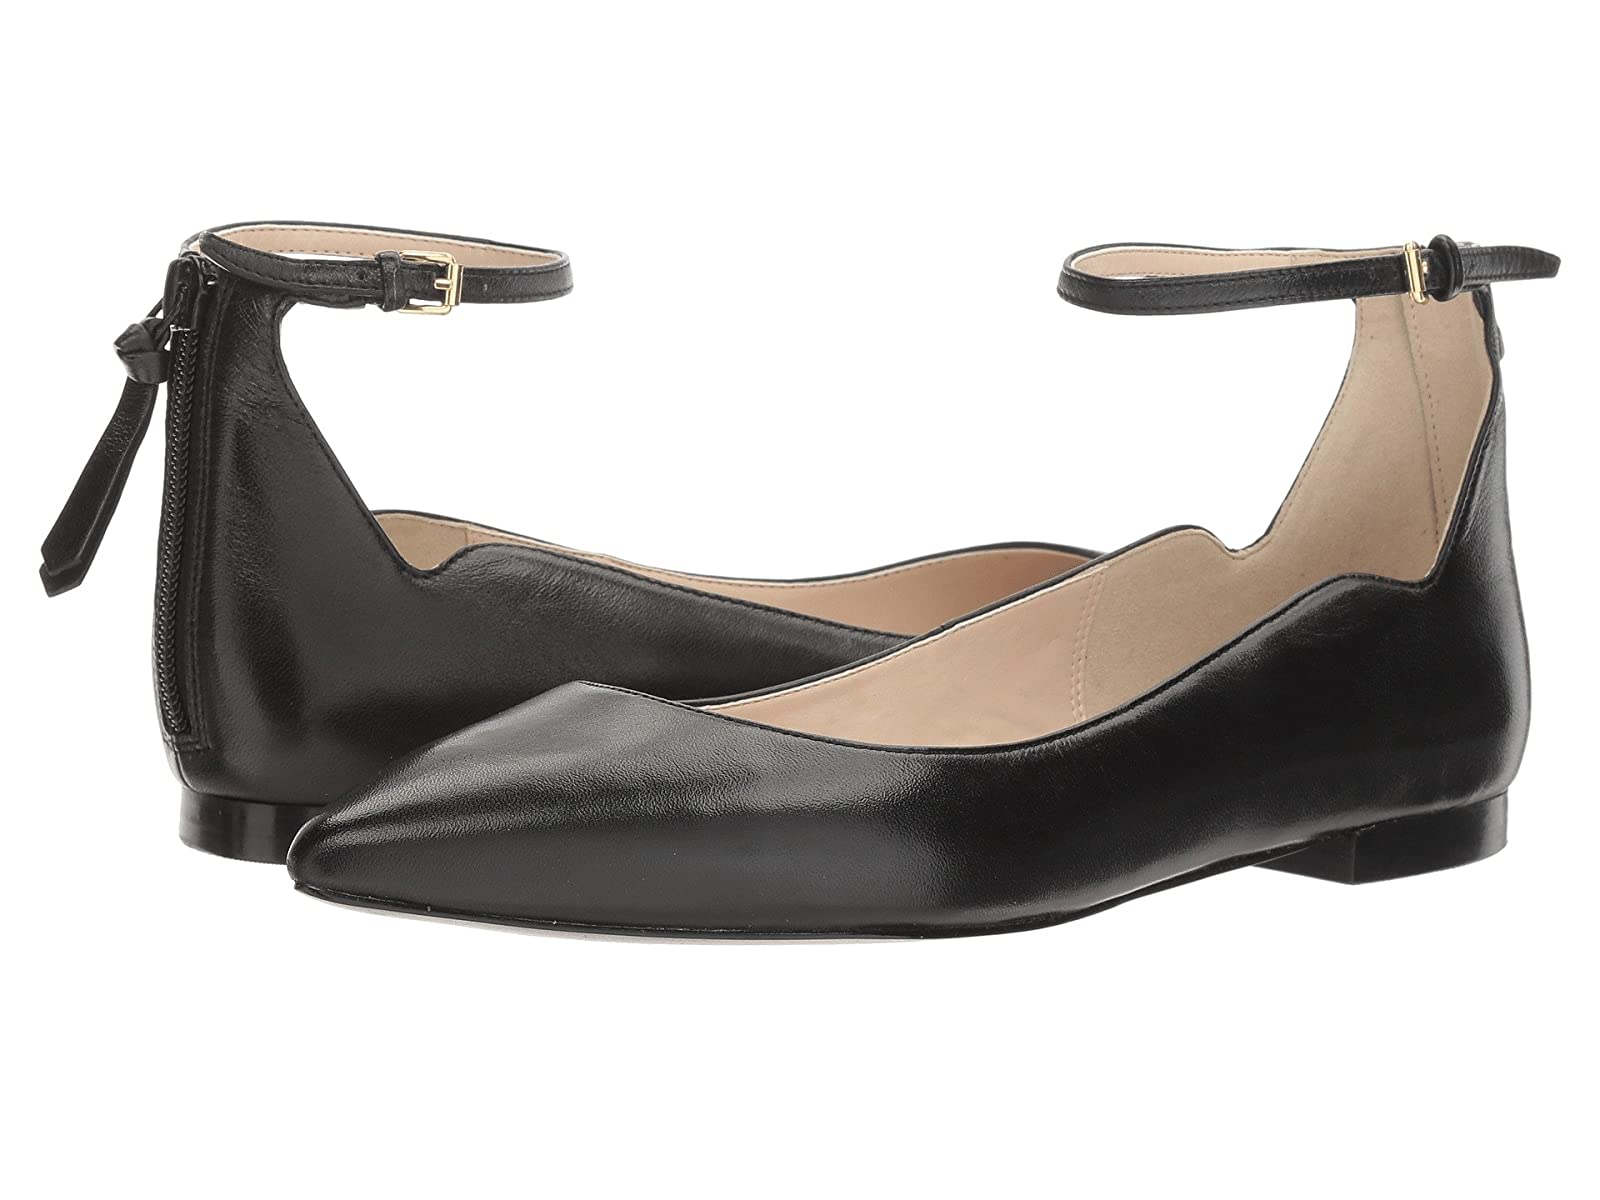 Cole Haan Millicent SkimmerCheap and distinctive eye-catching shoes